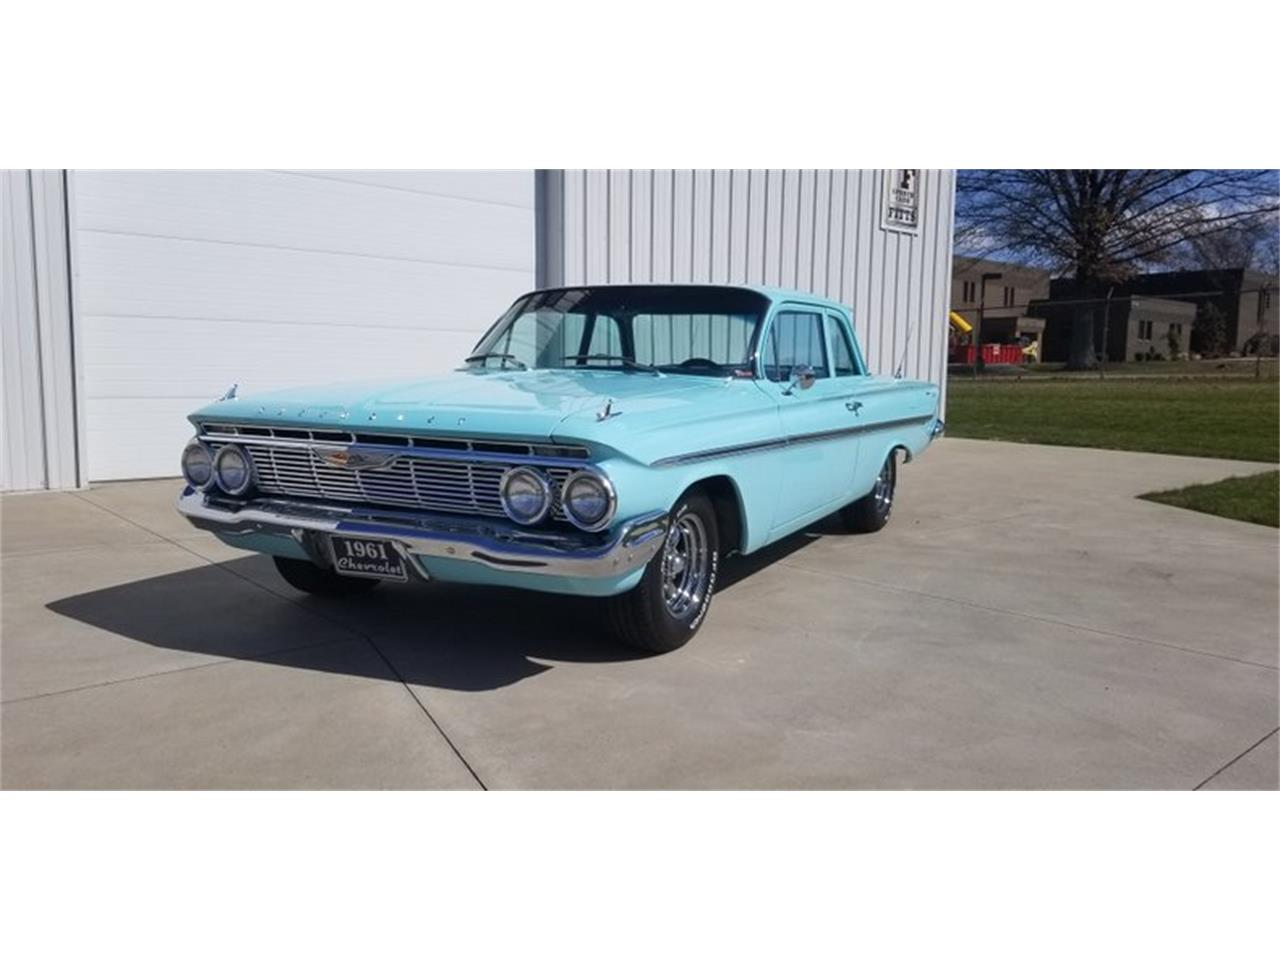 Large Picture of Classic 1961 Bel Air located in Greensboro North Carolina Auction Vehicle Offered by GAA Classic Cars Auctions - Q8XB